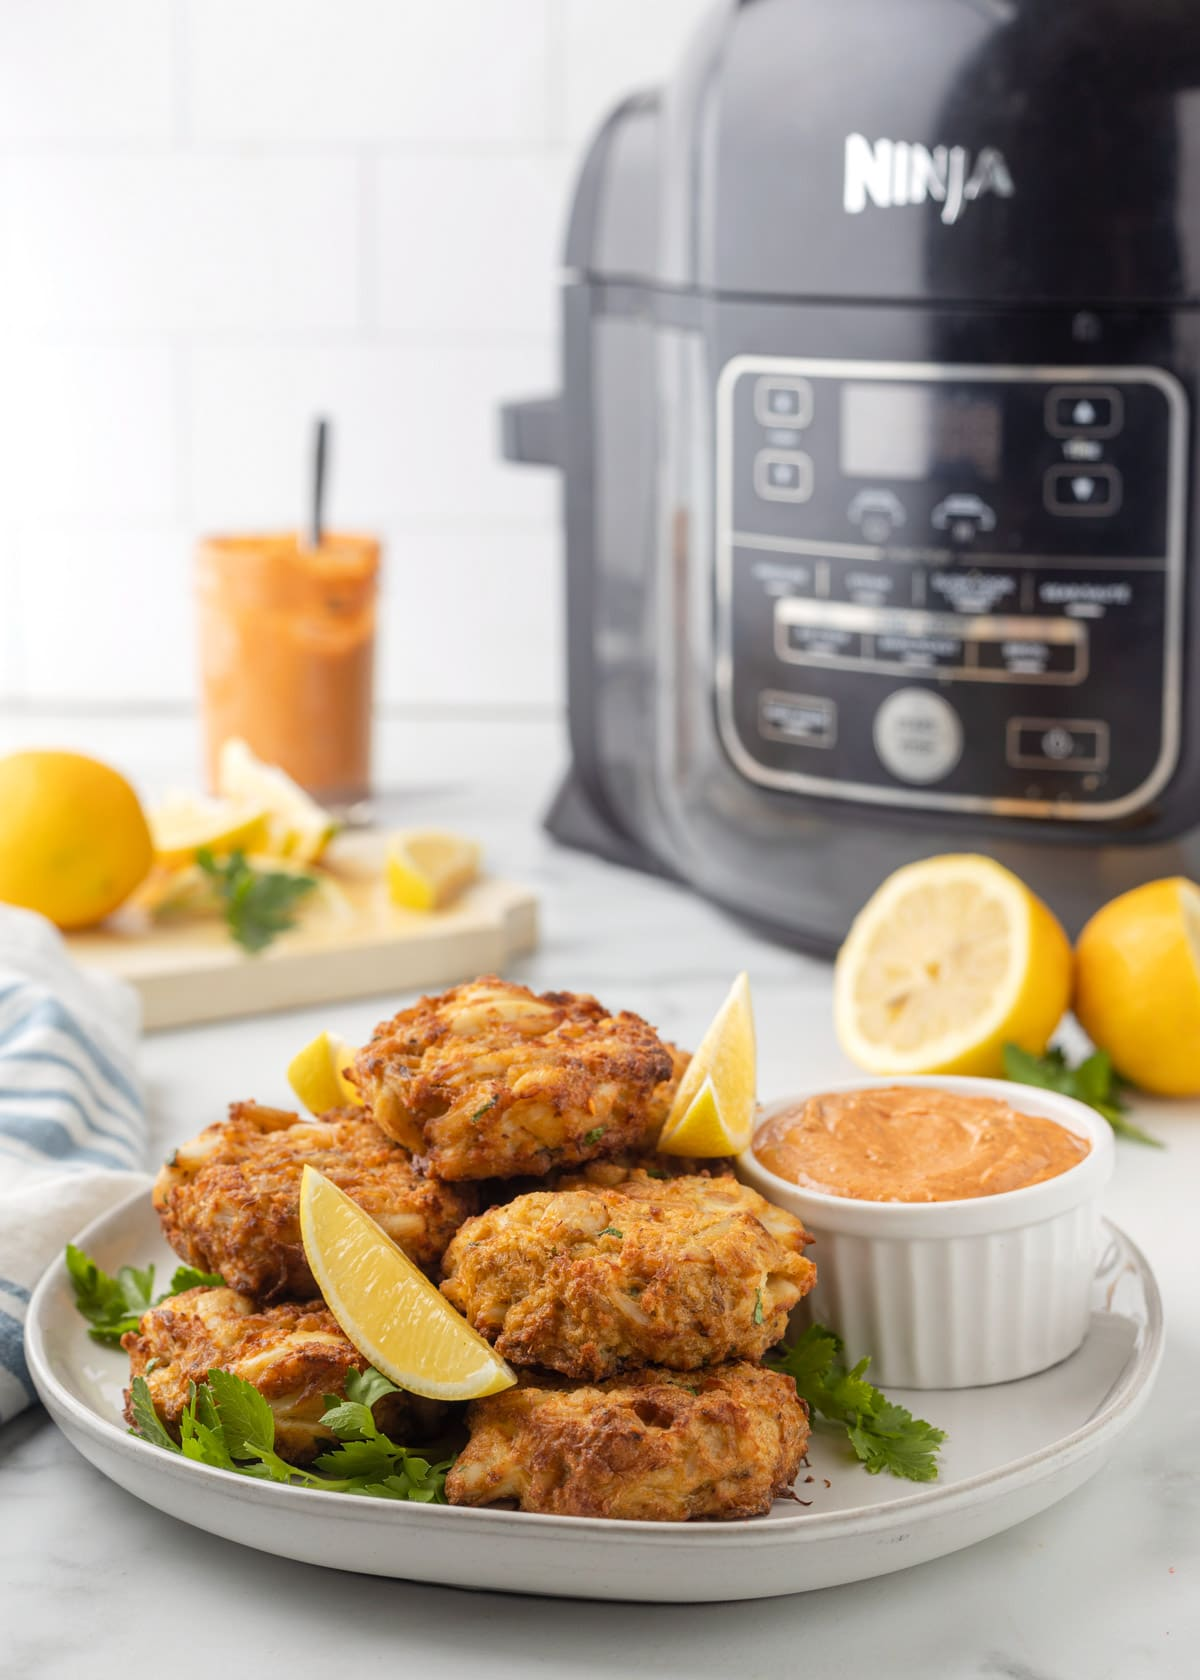 air fryer crab cakes on a white plate with lemon wedges and remoulade in front of a ninja foodi air fryer